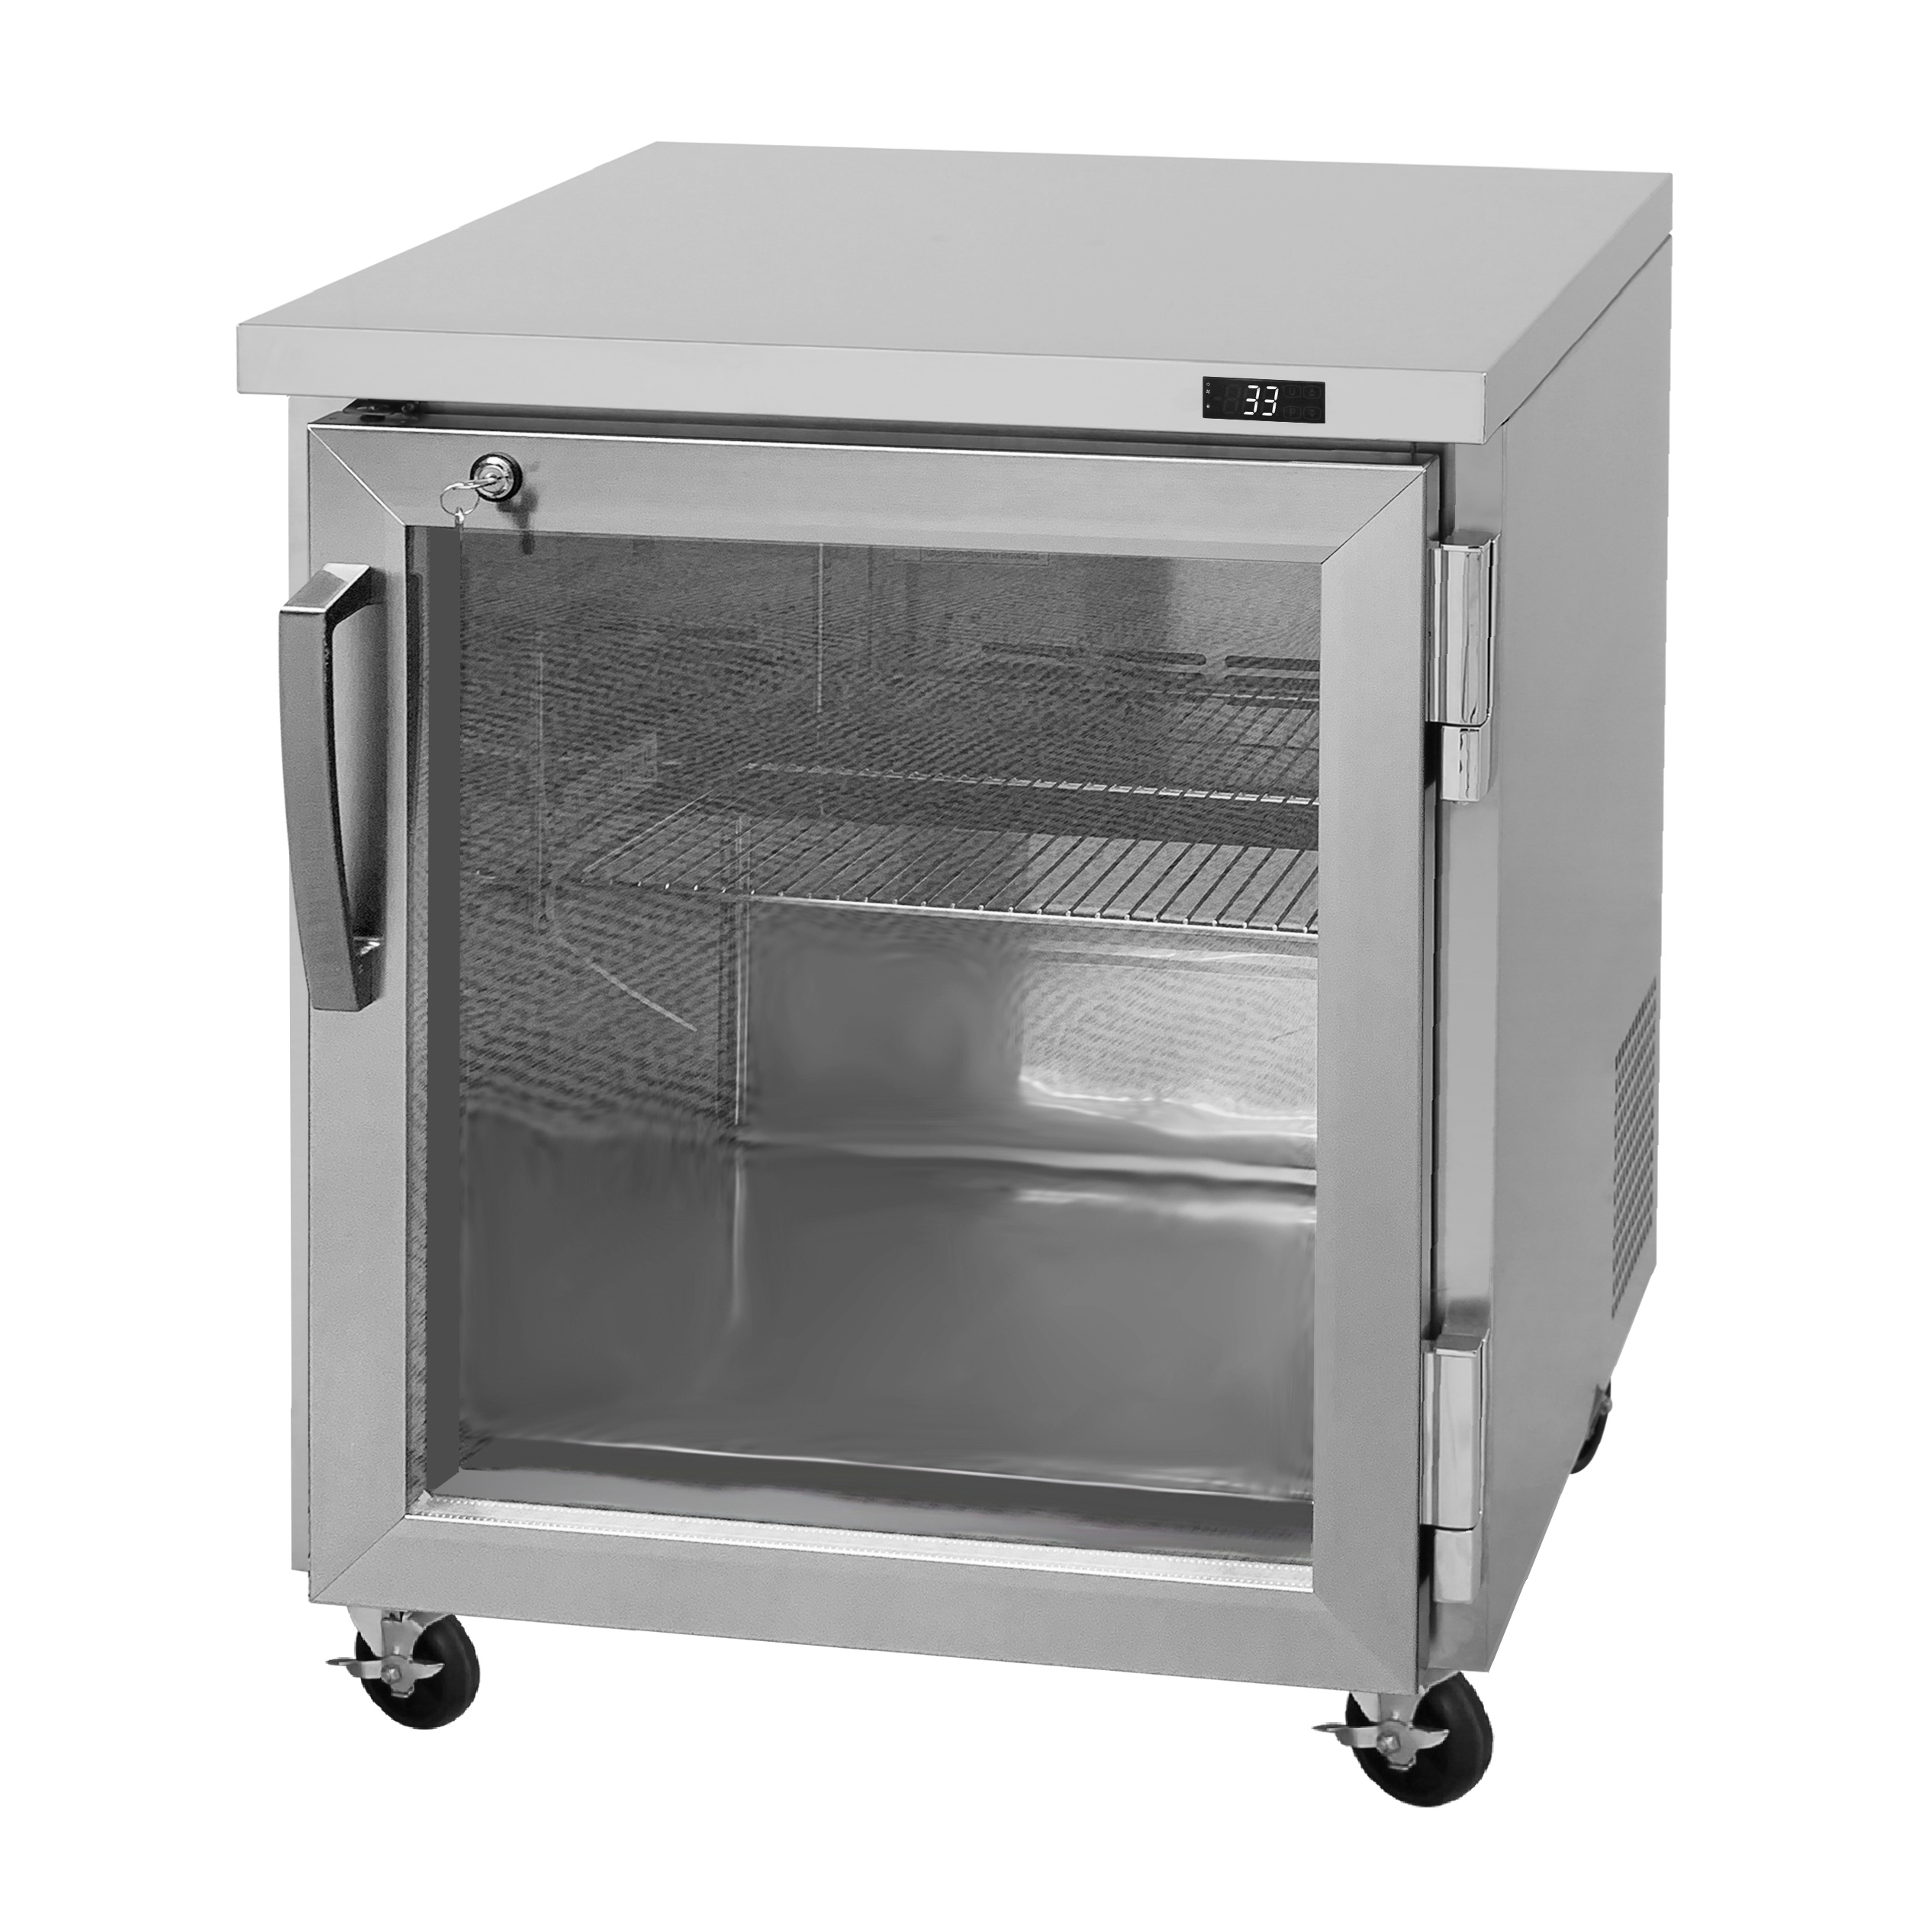 Turbo Air PUR-28-G-N refrigerator, undercounter, reach-in